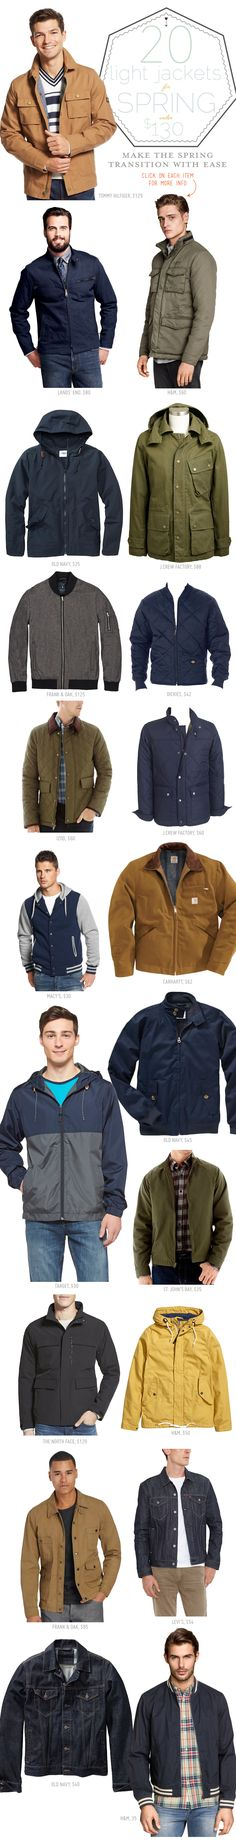 20 Light Jackets for Spring Under $130 - Primer